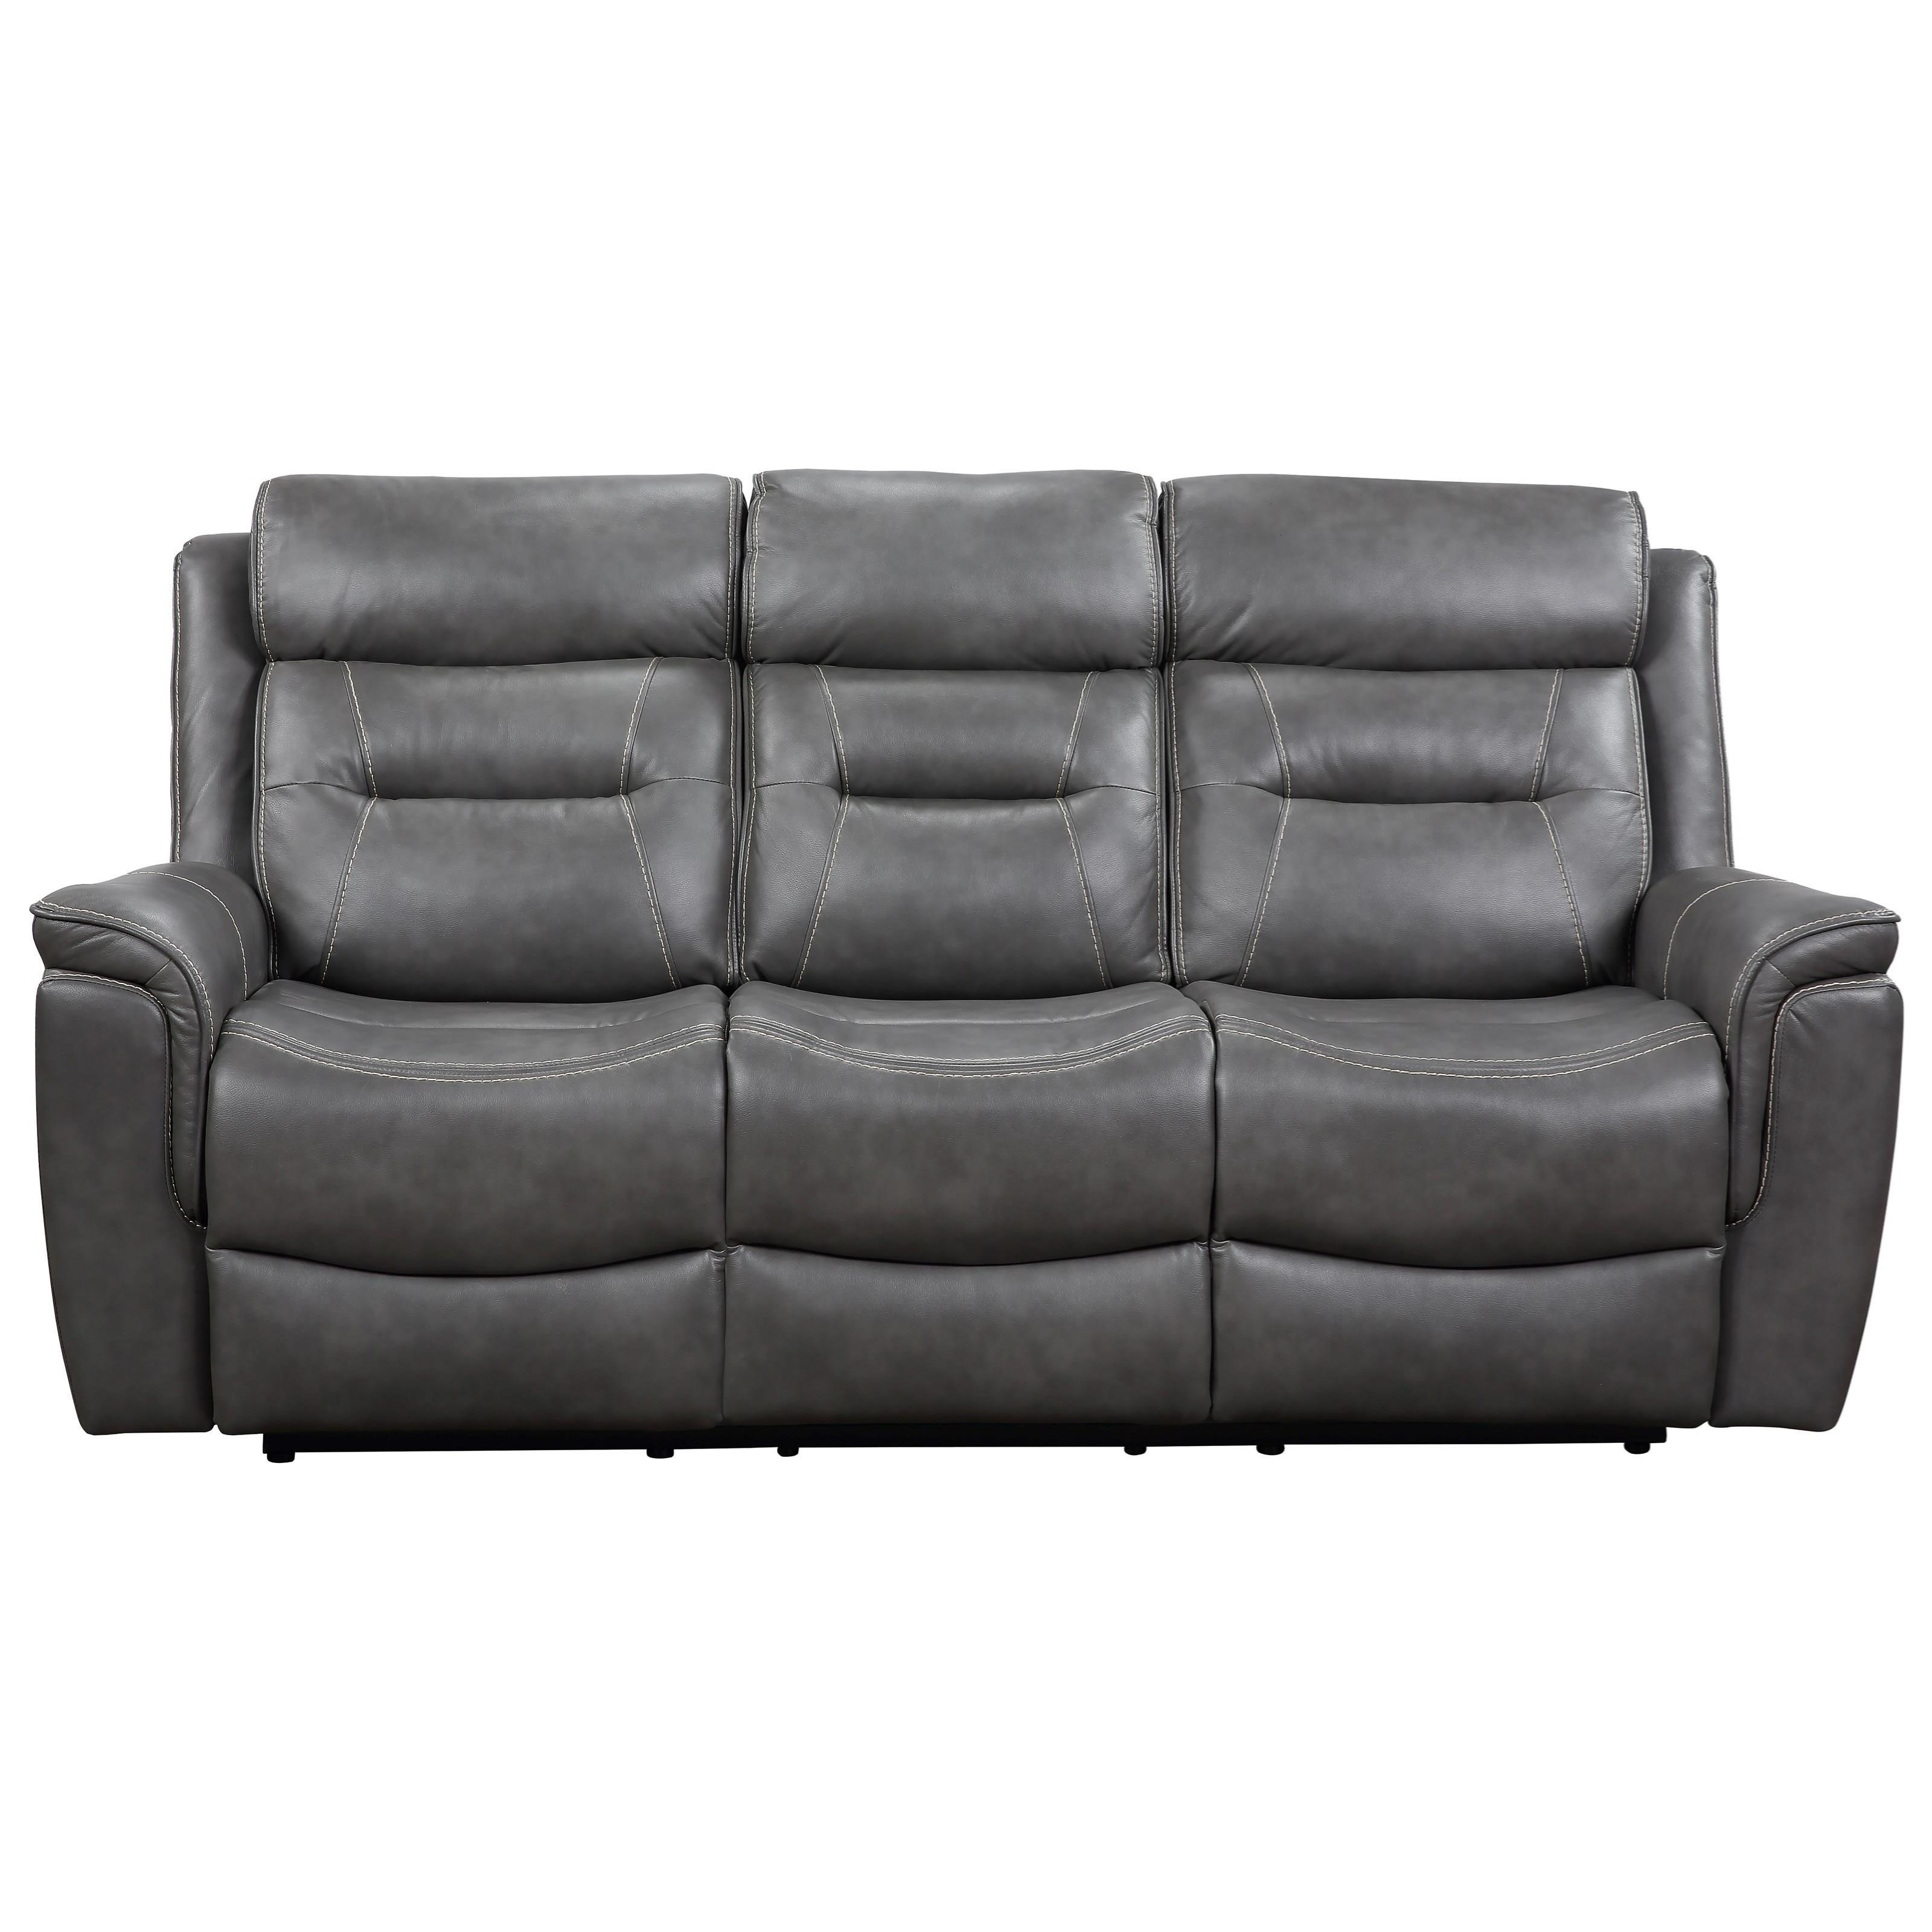 Nash Reclining Sofa by Steve Silver at Northeast Factory Direct